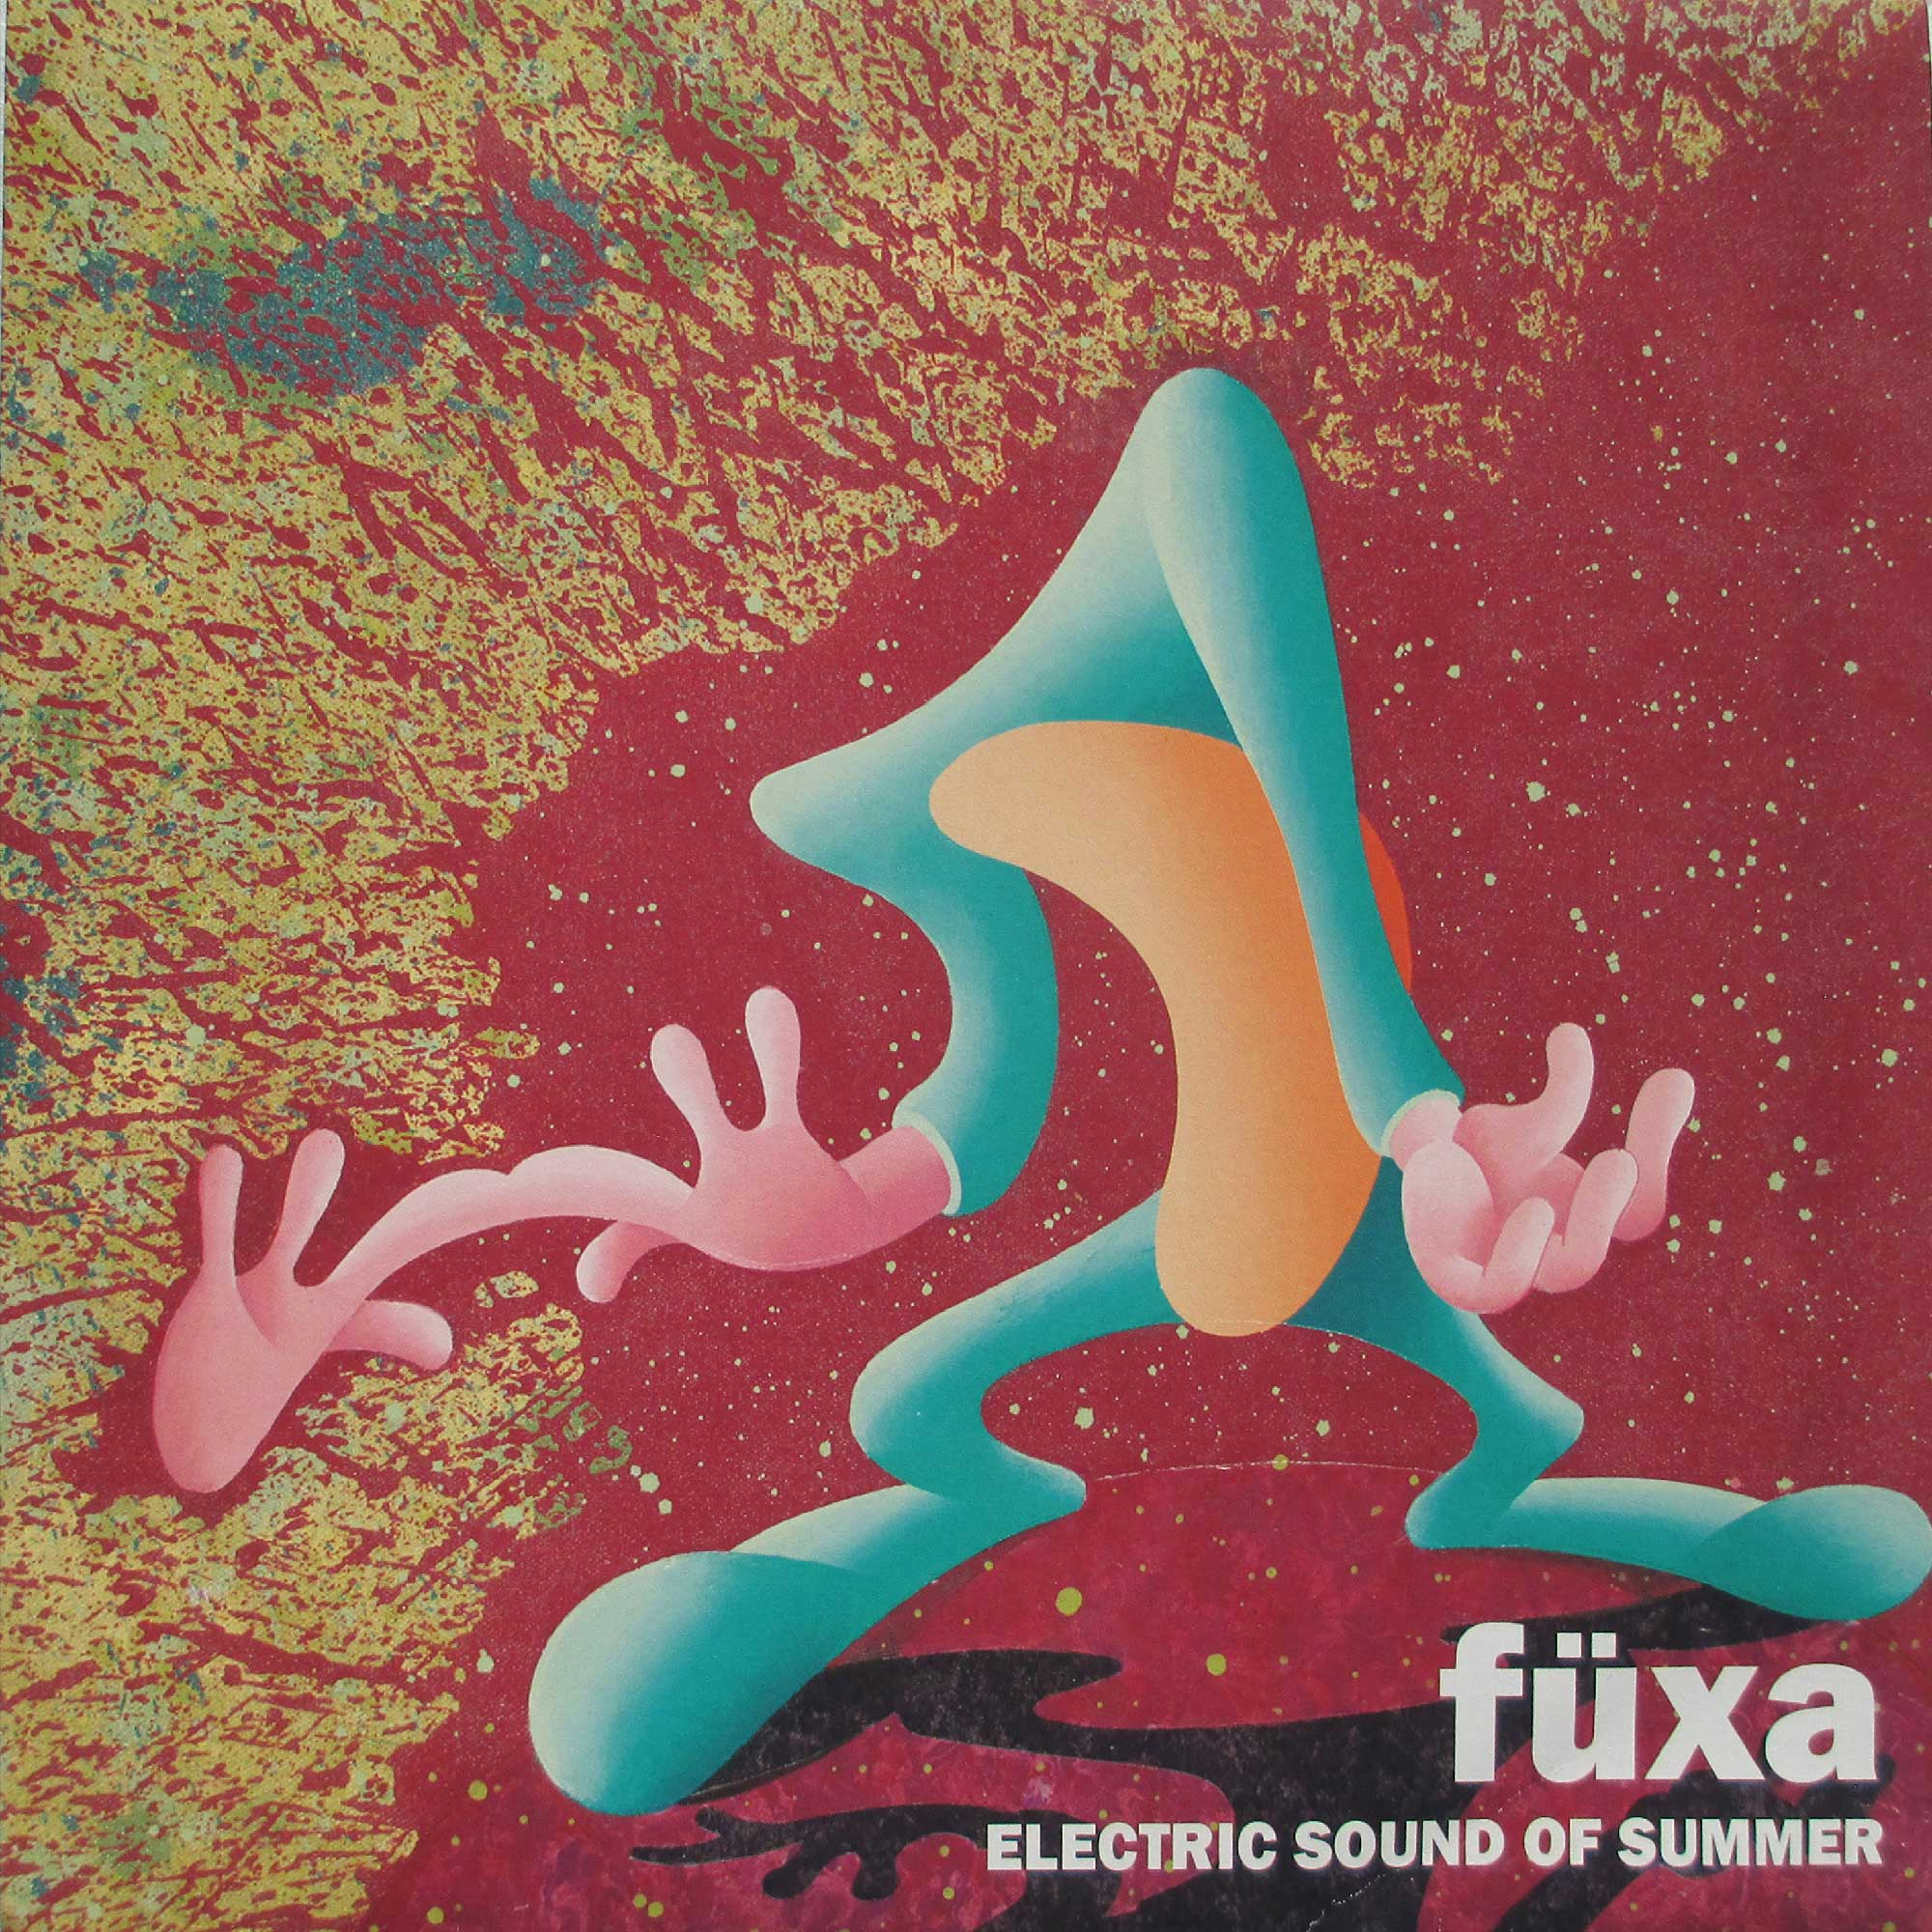 Füxa, Electric Sounds of Summer